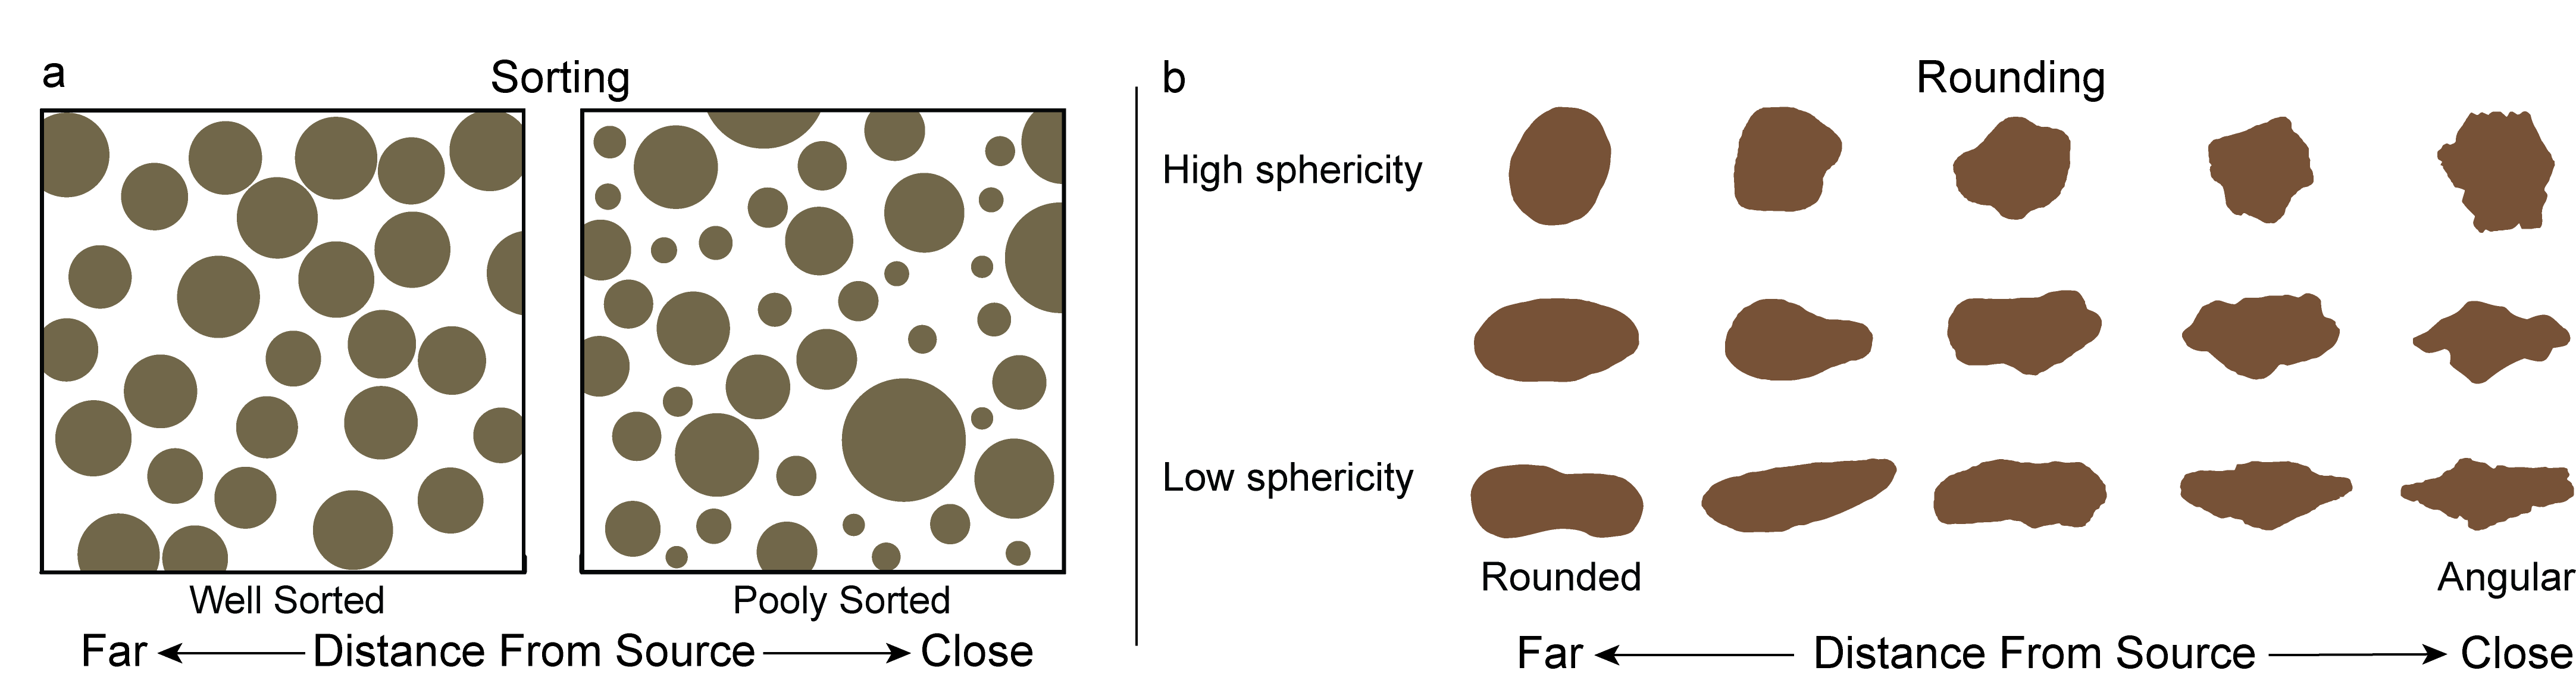 Characterizing the sorting and roundness of sediment grains.